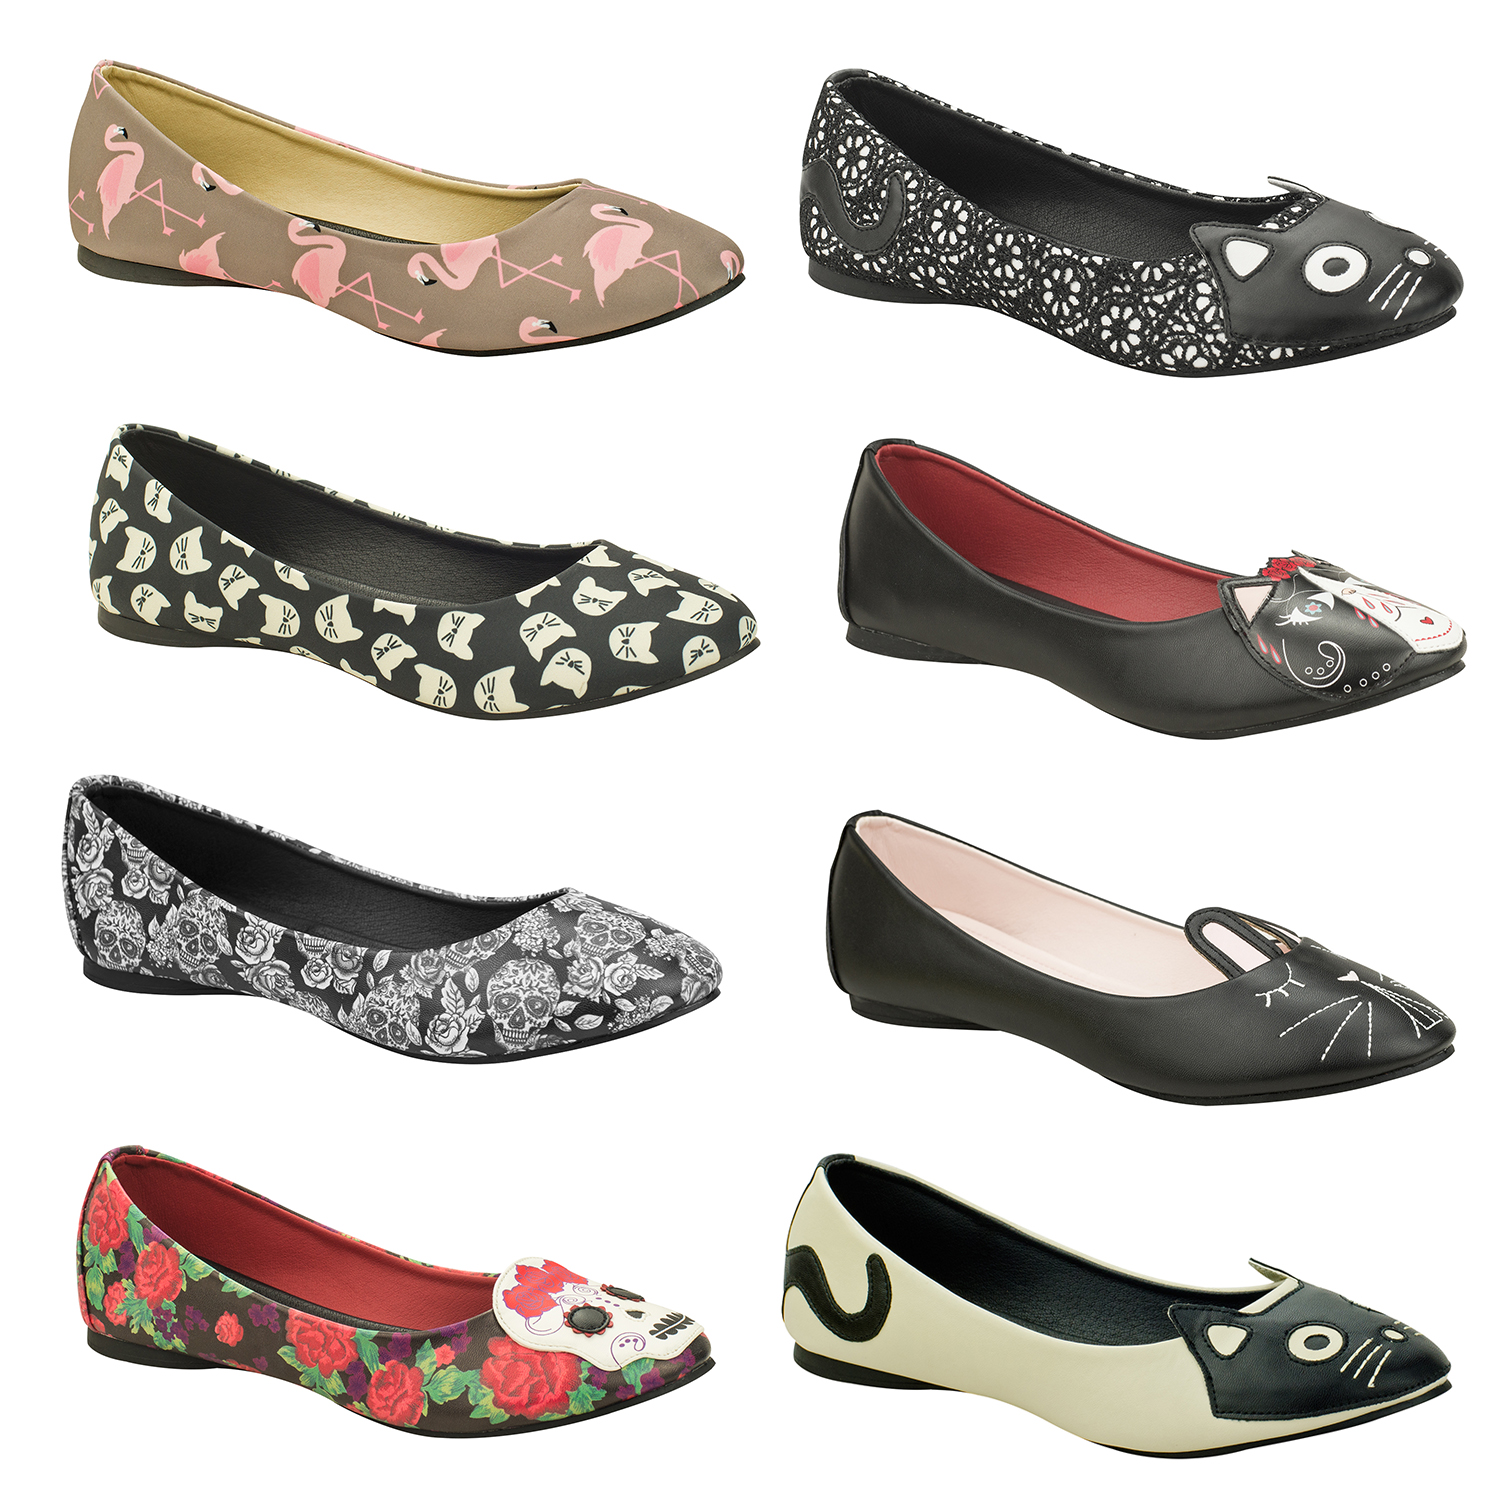 Rockabilly Flat Shoes Uk